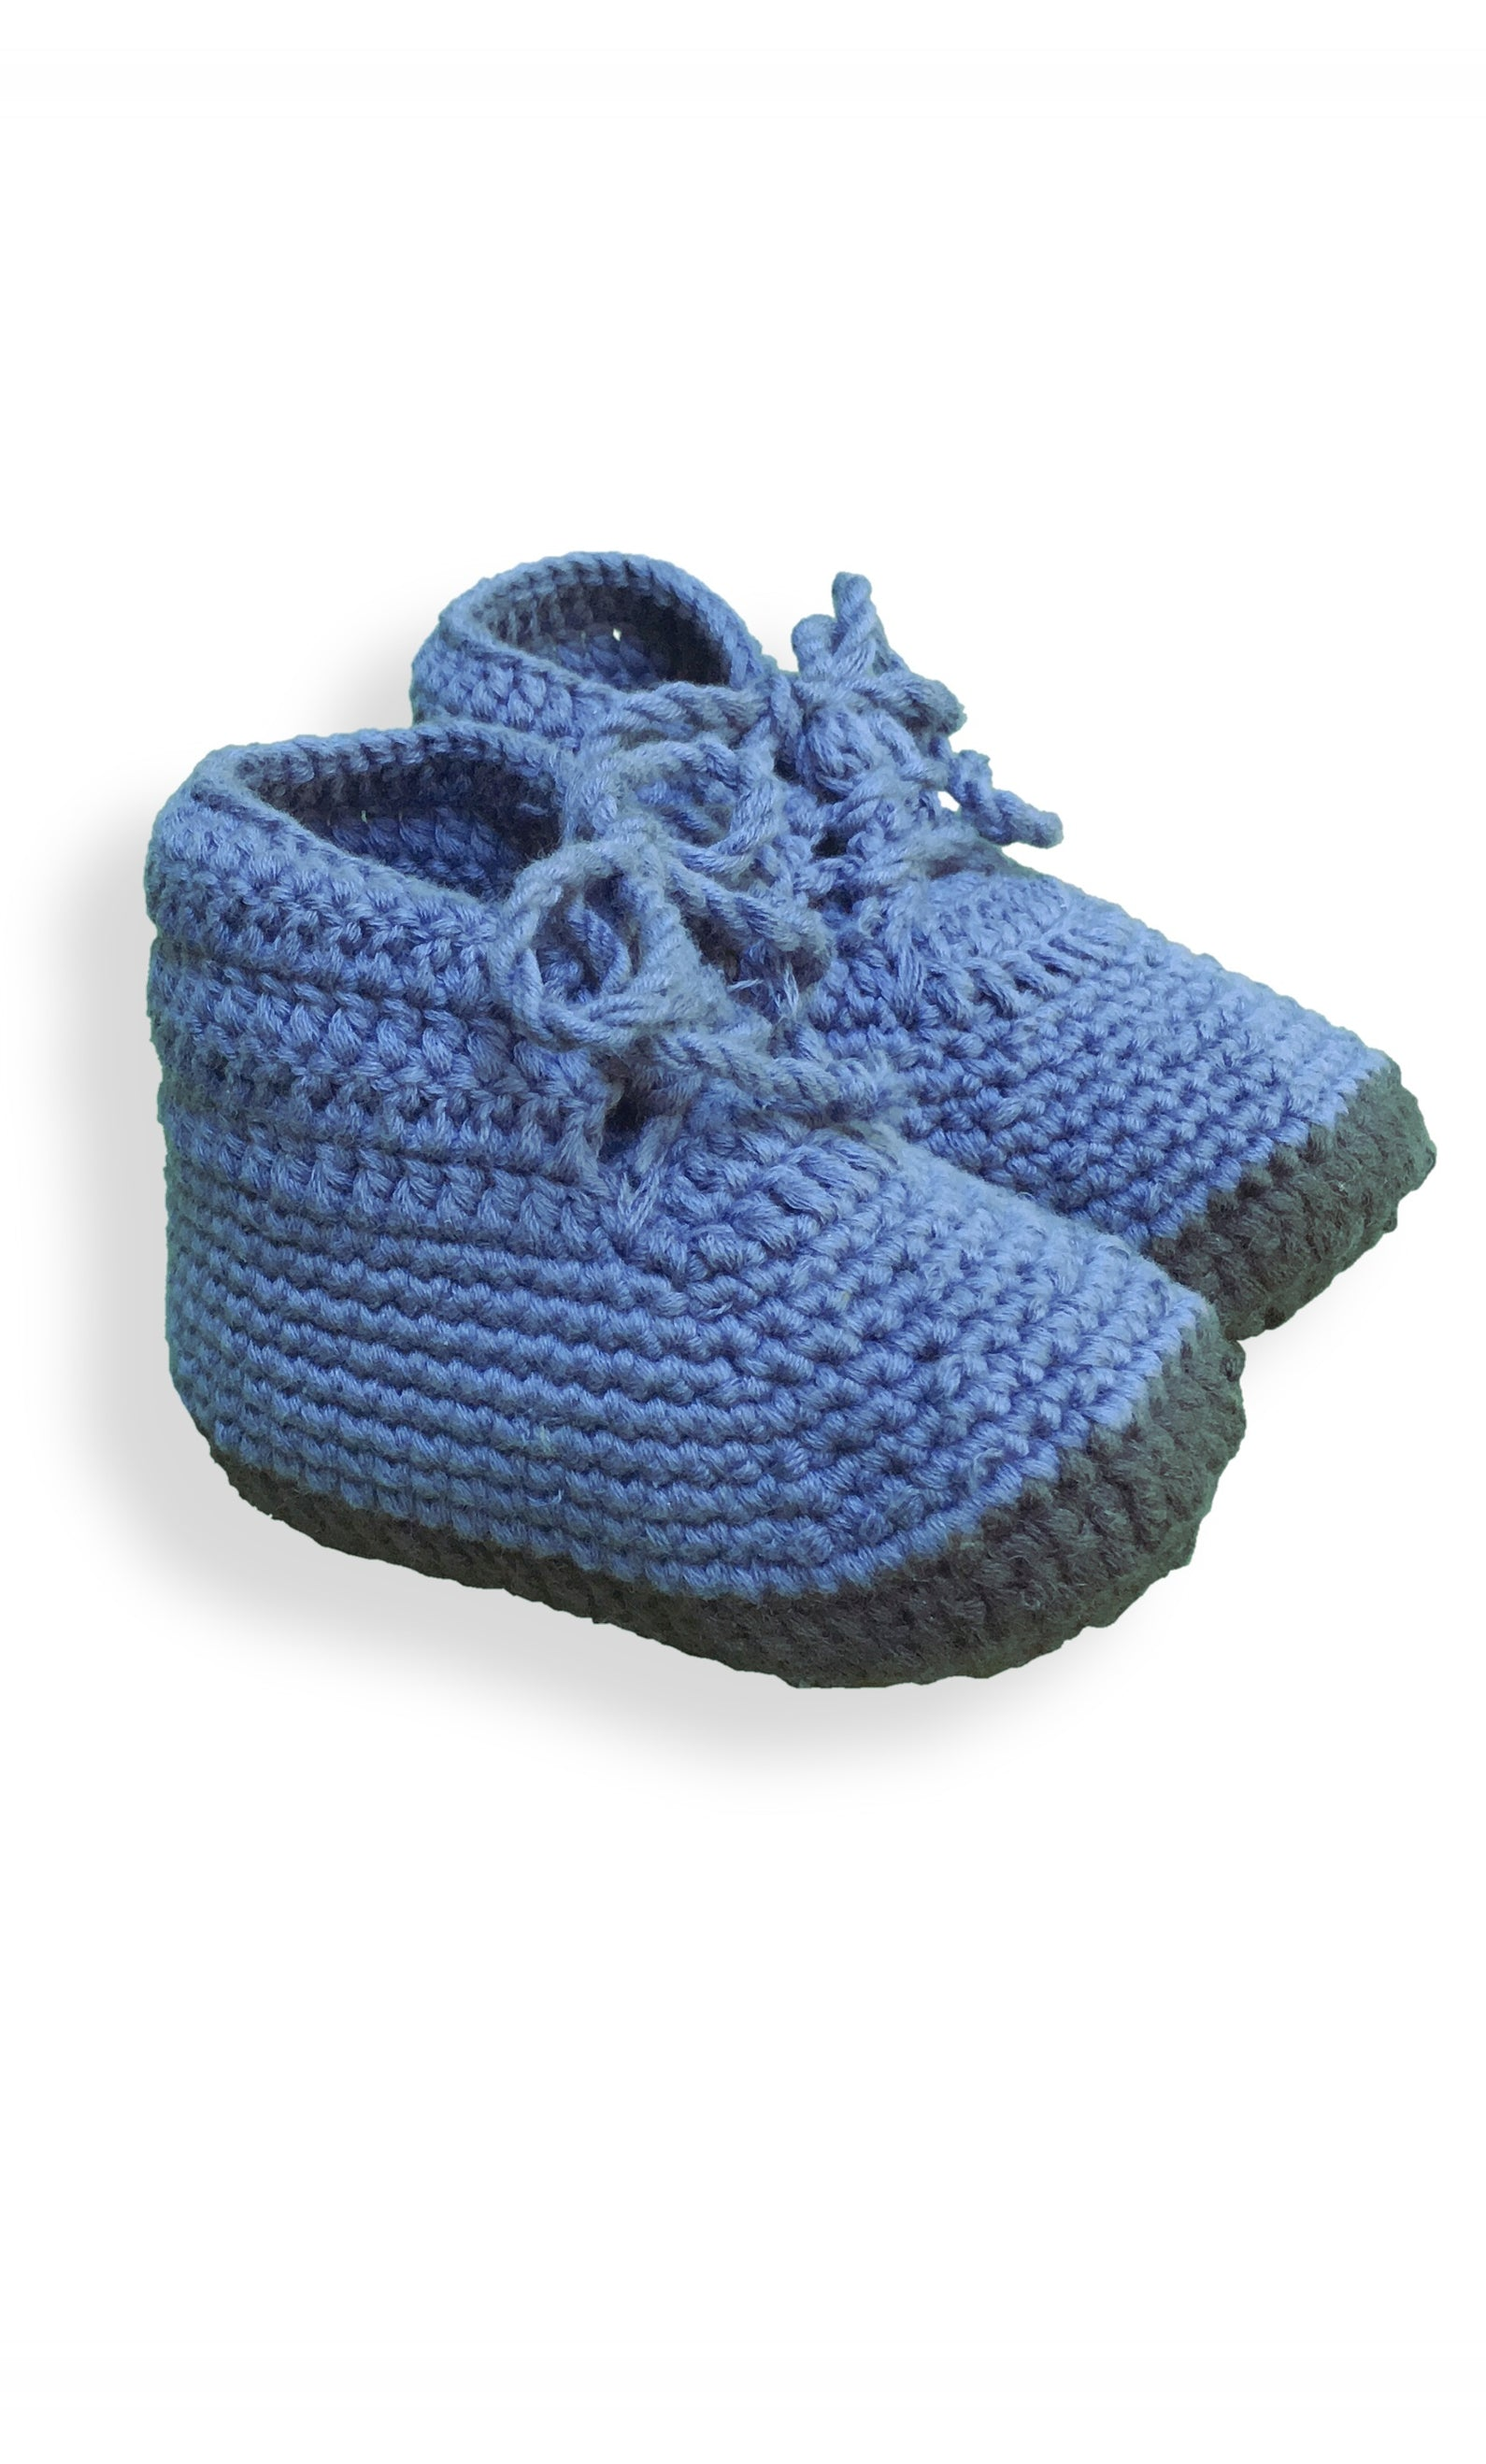 Hand crocheted all cotton booties in slate blue & gray from San Pablo La Laguna, Lake Atitlan Guatemala